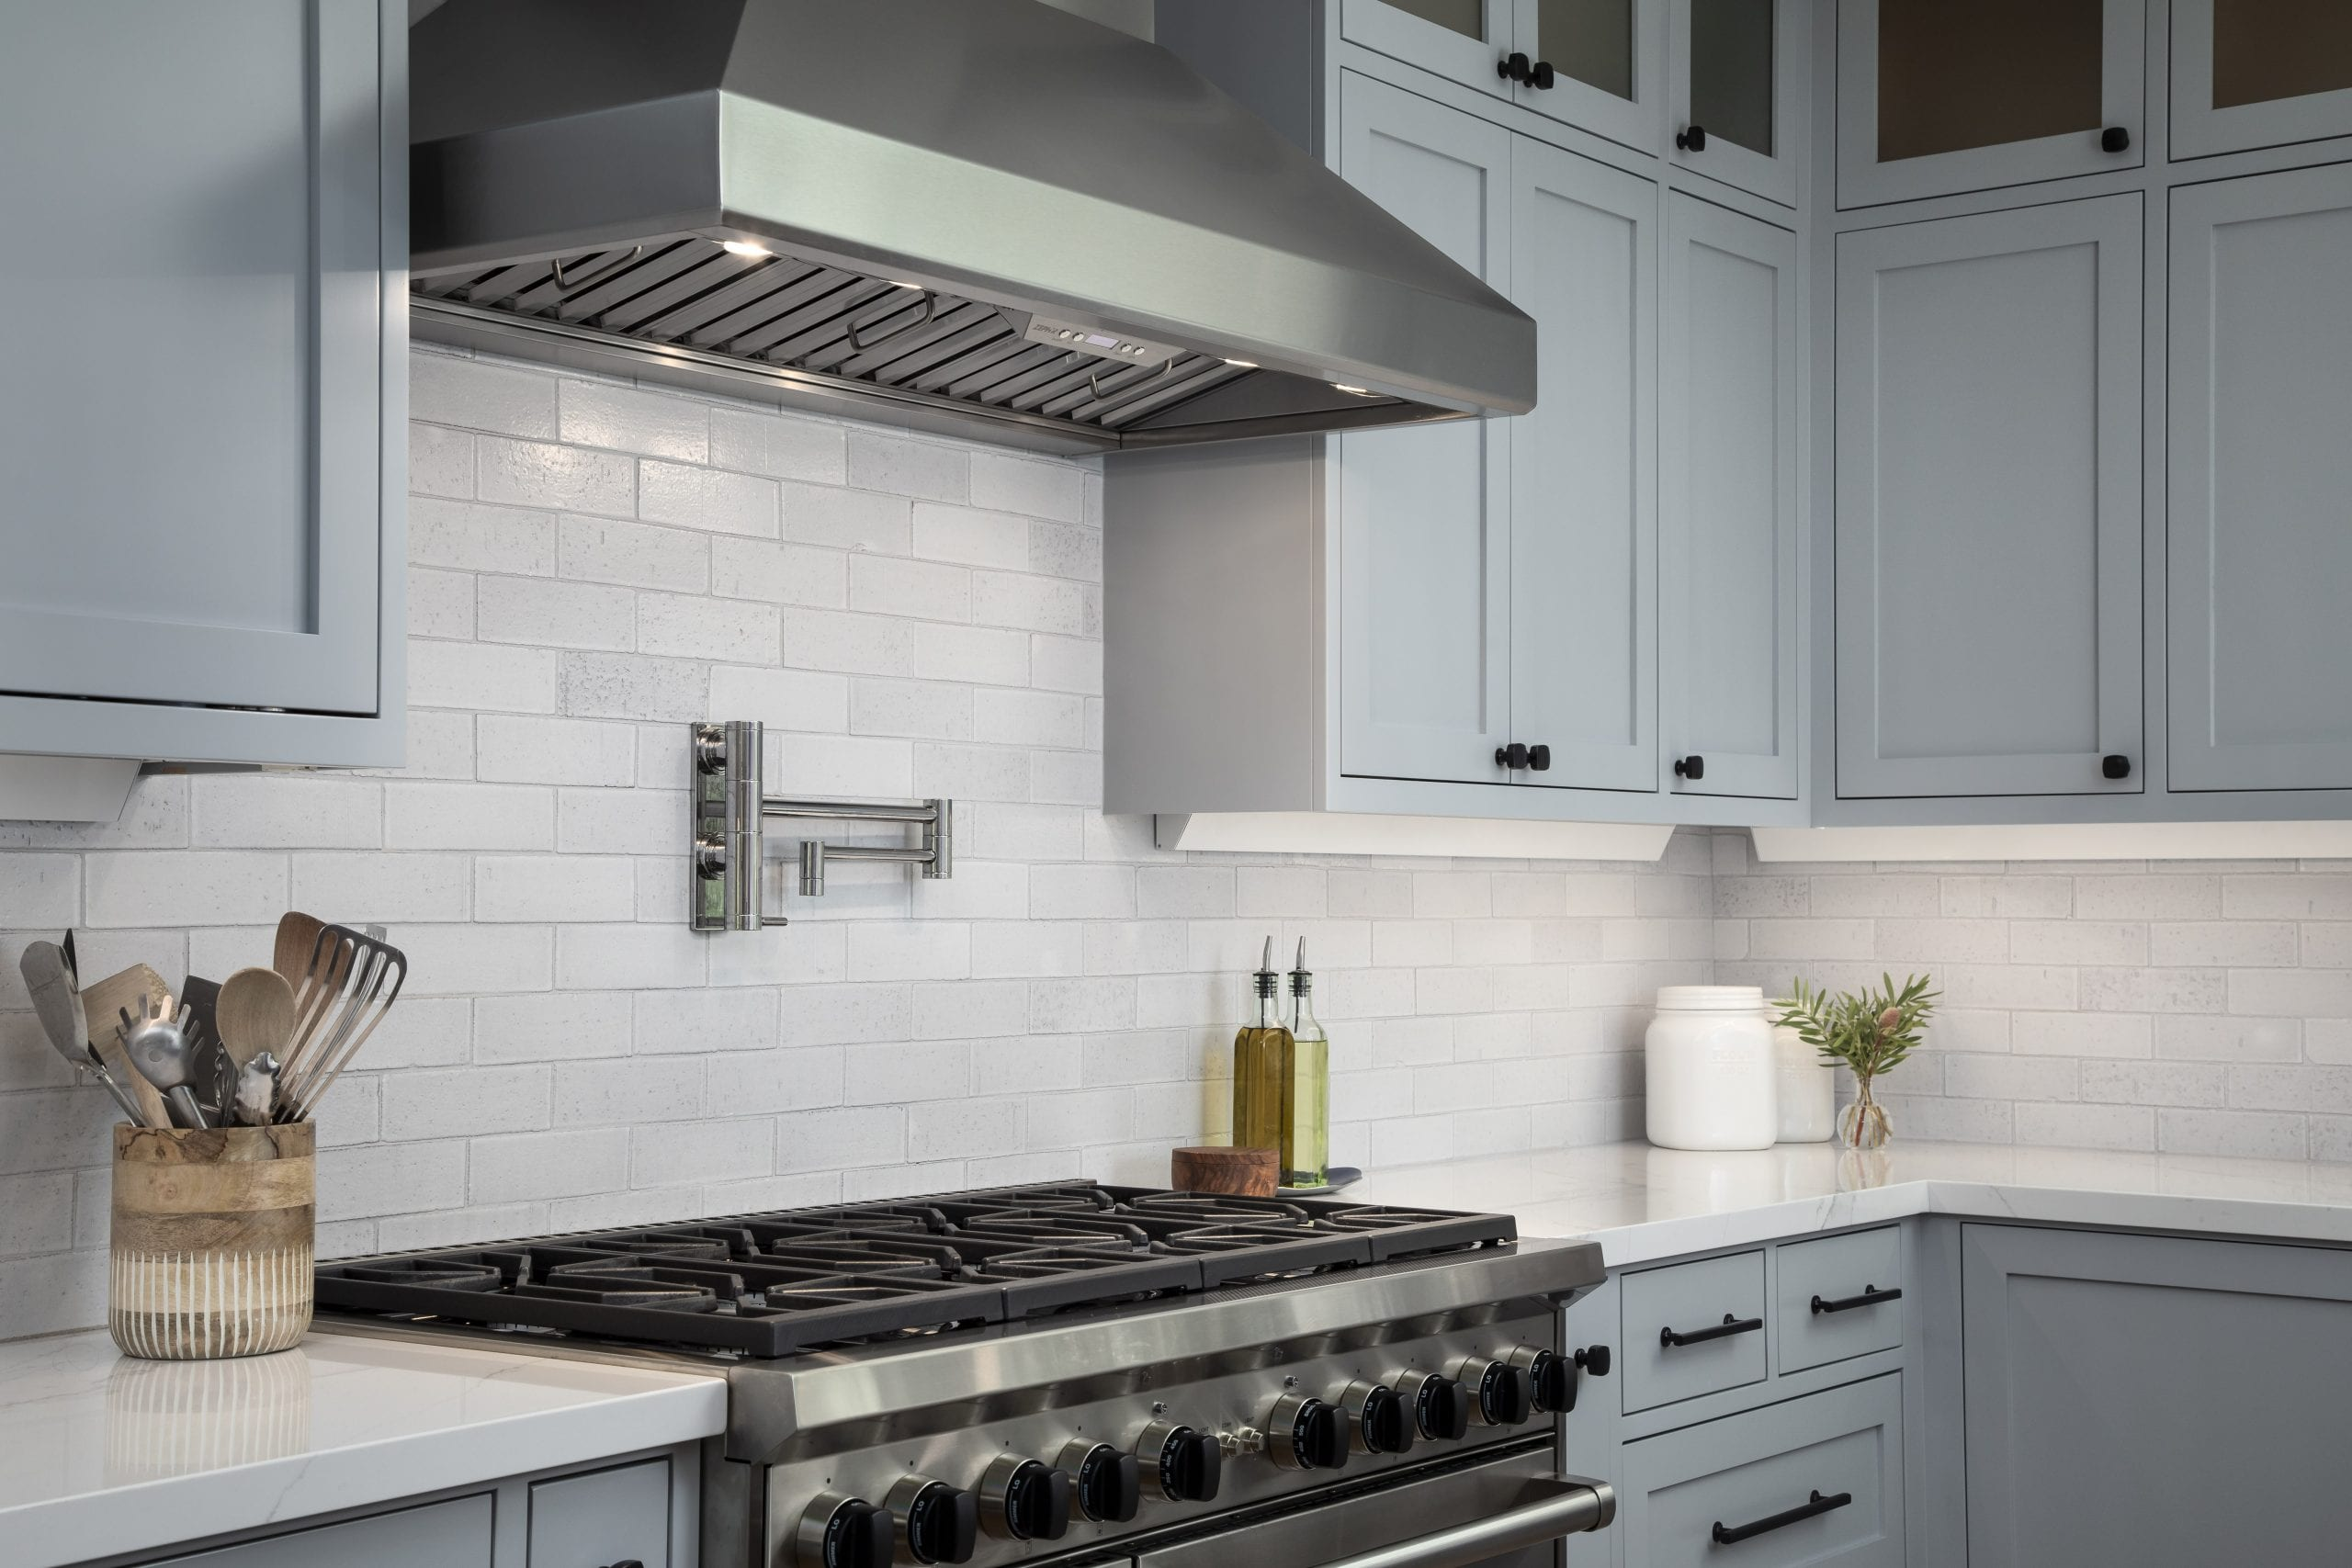 Kitchen stove with metal exhaust hood above with glass backsplash